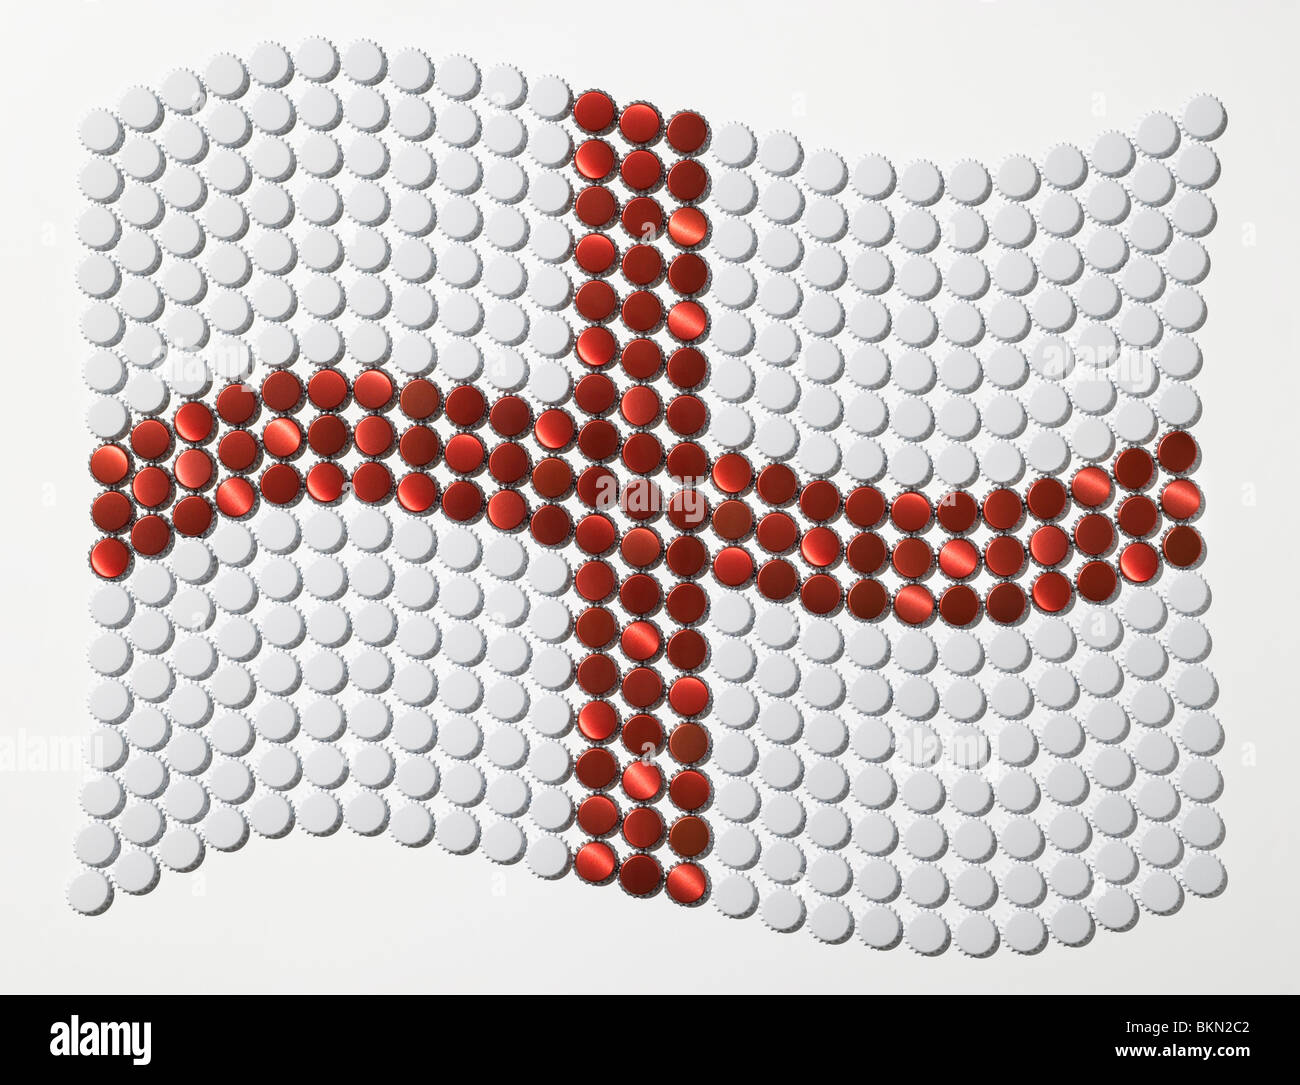 Flag of Saint George made of bottle tops Stock Photo: 29351730 - Alamy